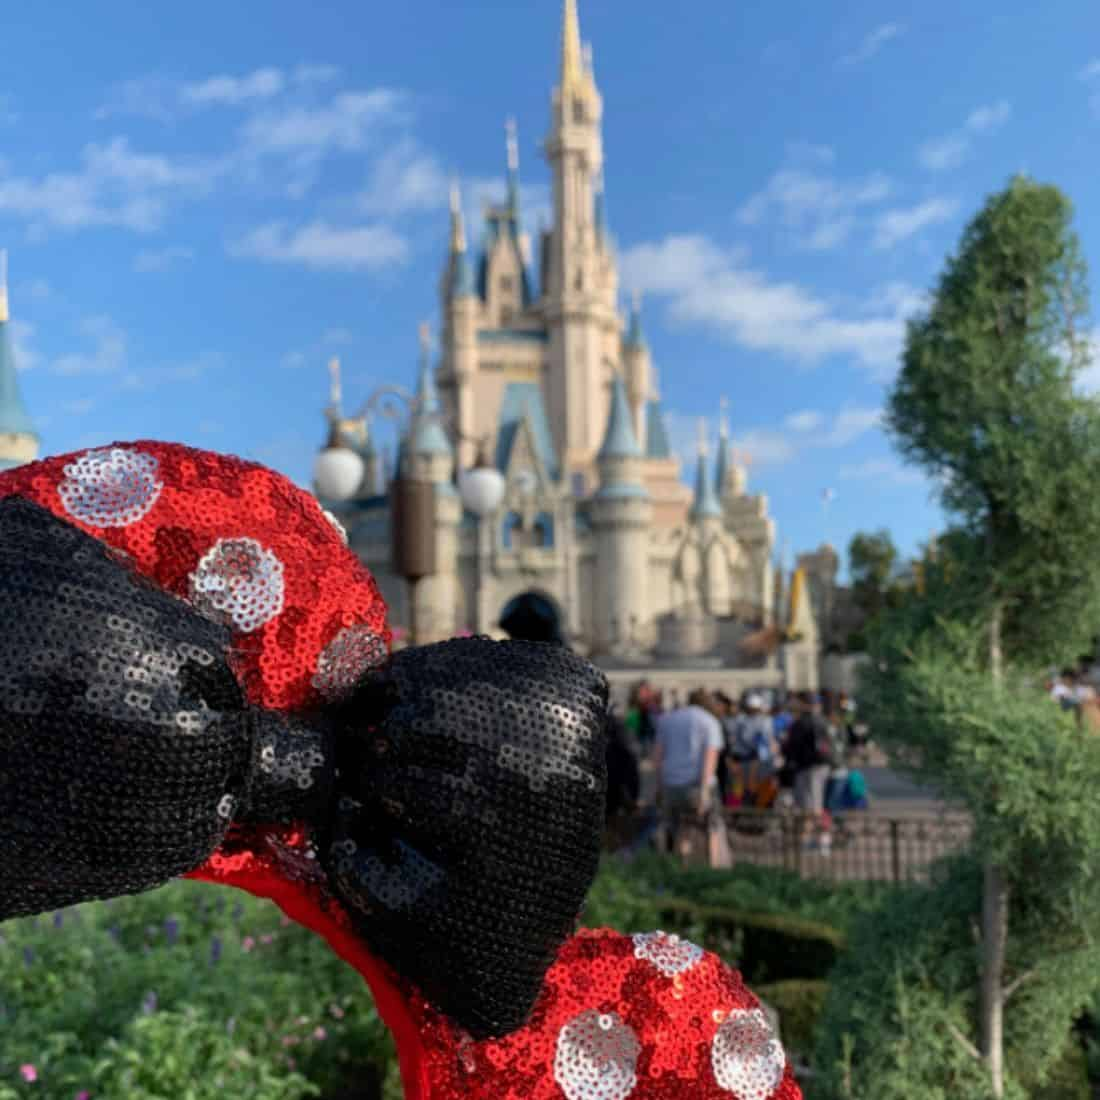 Red sequin headband with white dots and black sequin blow in front of Cinderella's castle at Disney World amid a blue sky with a few white clouds